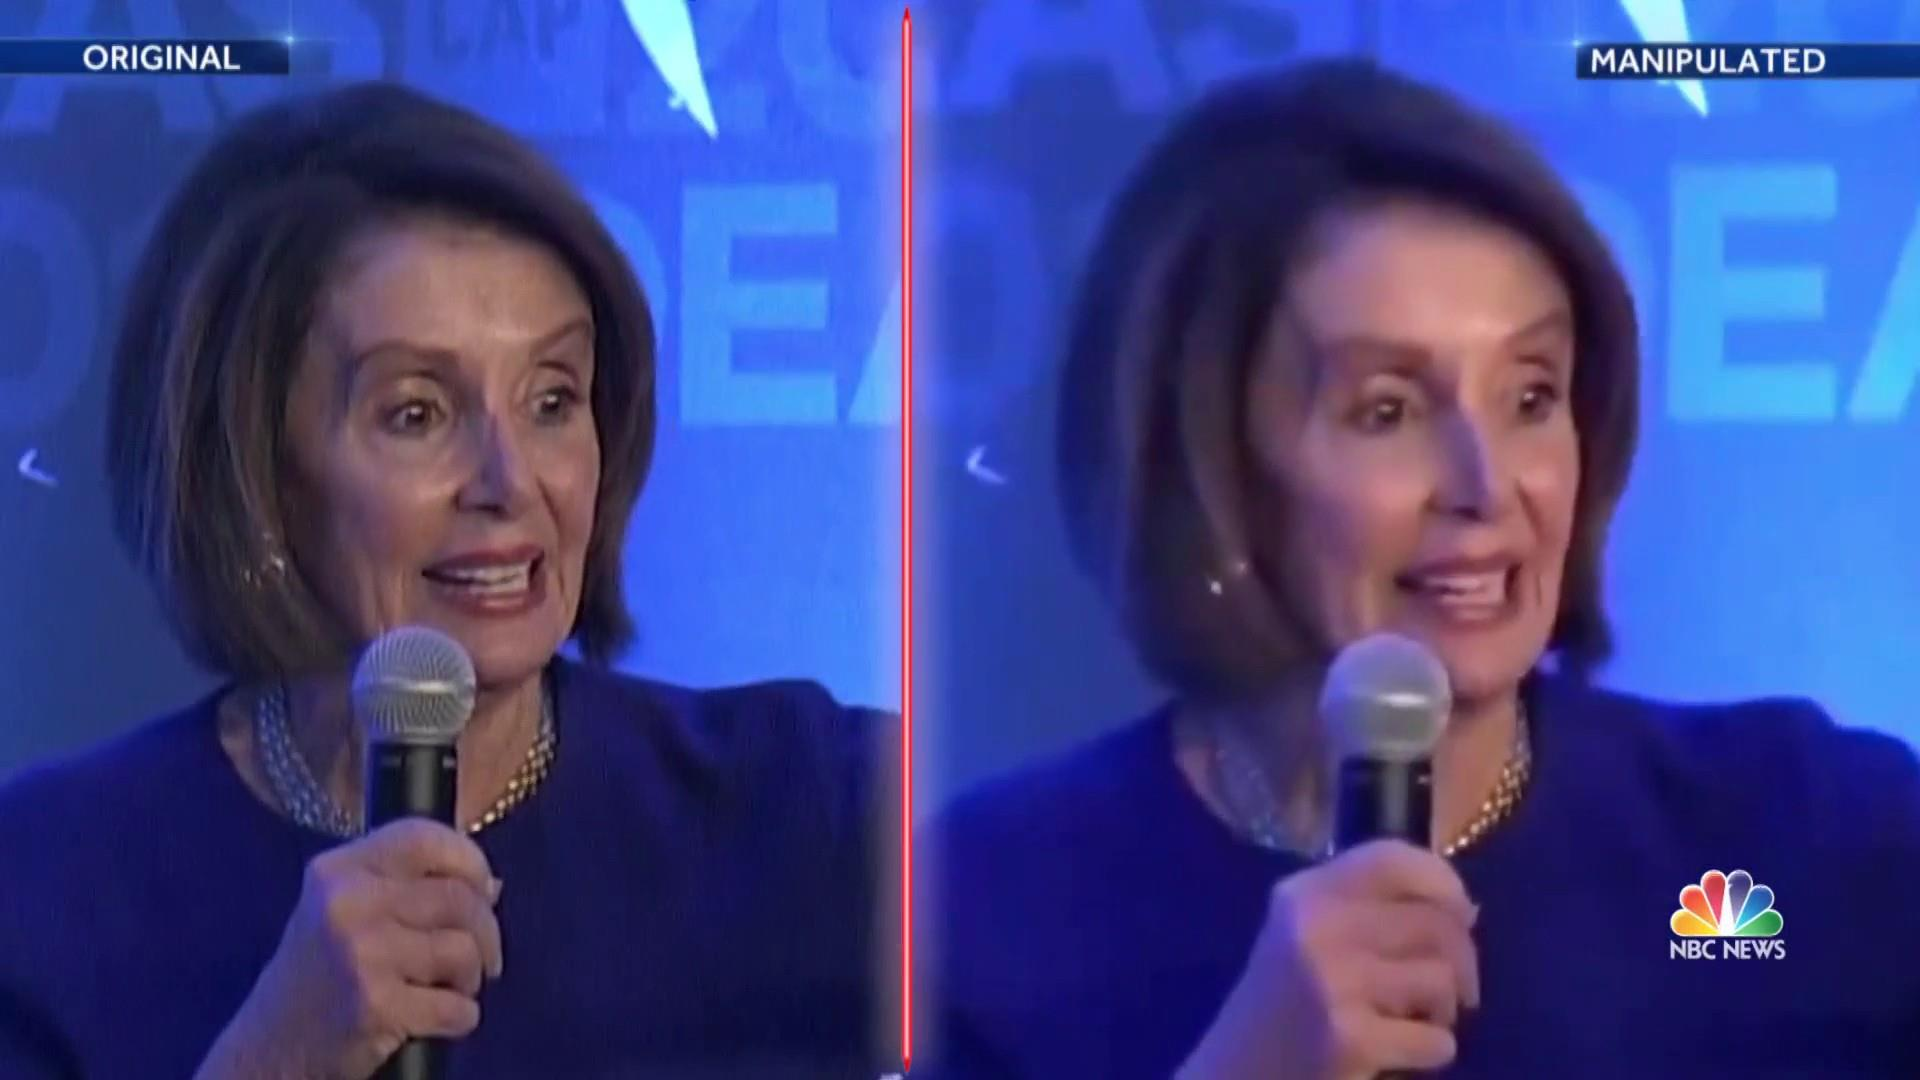 Edited Pelosi video highlights concerns about misinformation and elections